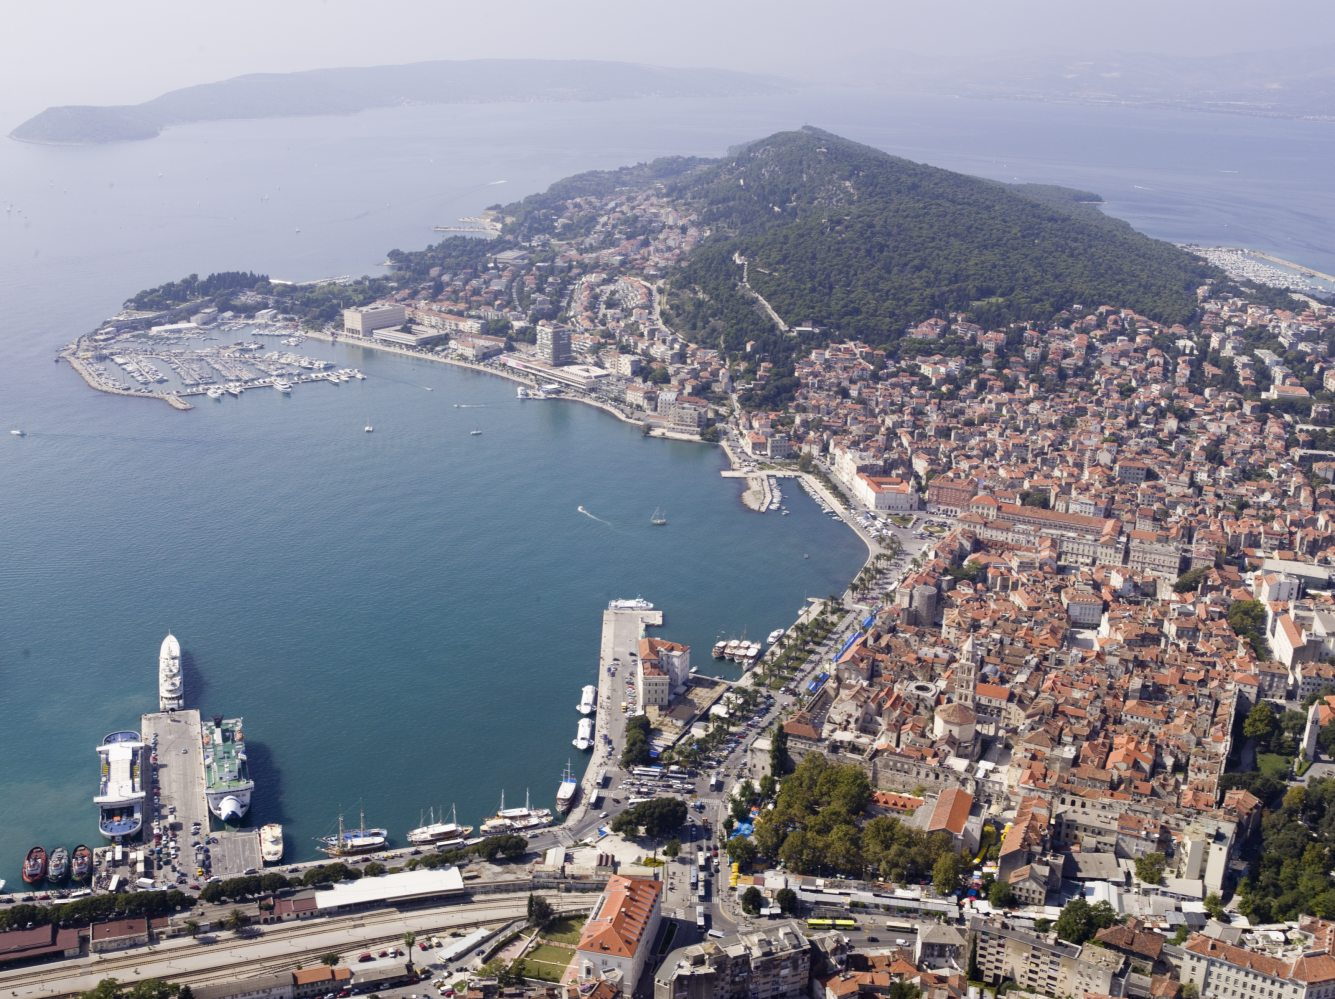 Movie Style Holiday, Split, Croatia, Europe, City port aerial view